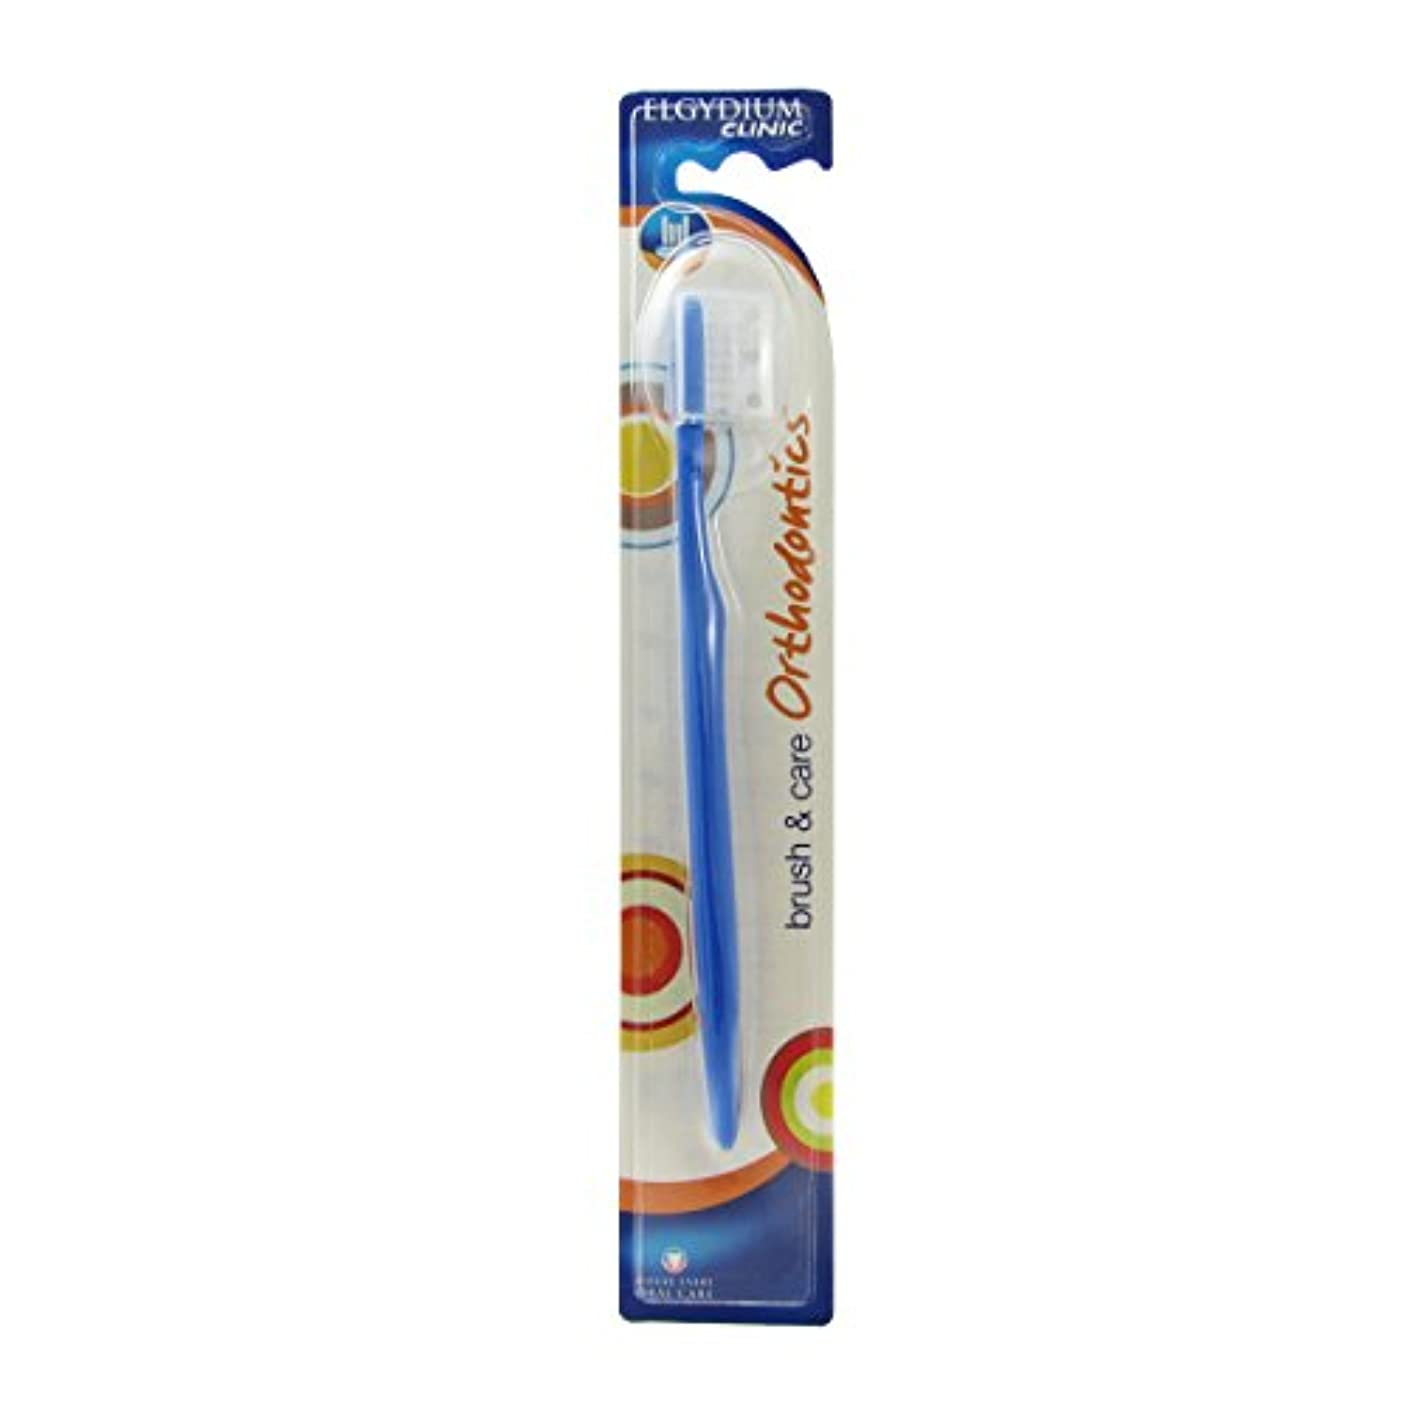 青資金サポートElgydium Clinic Orthodontics Orthodontic Medium Children Toothbrush [並行輸入品]